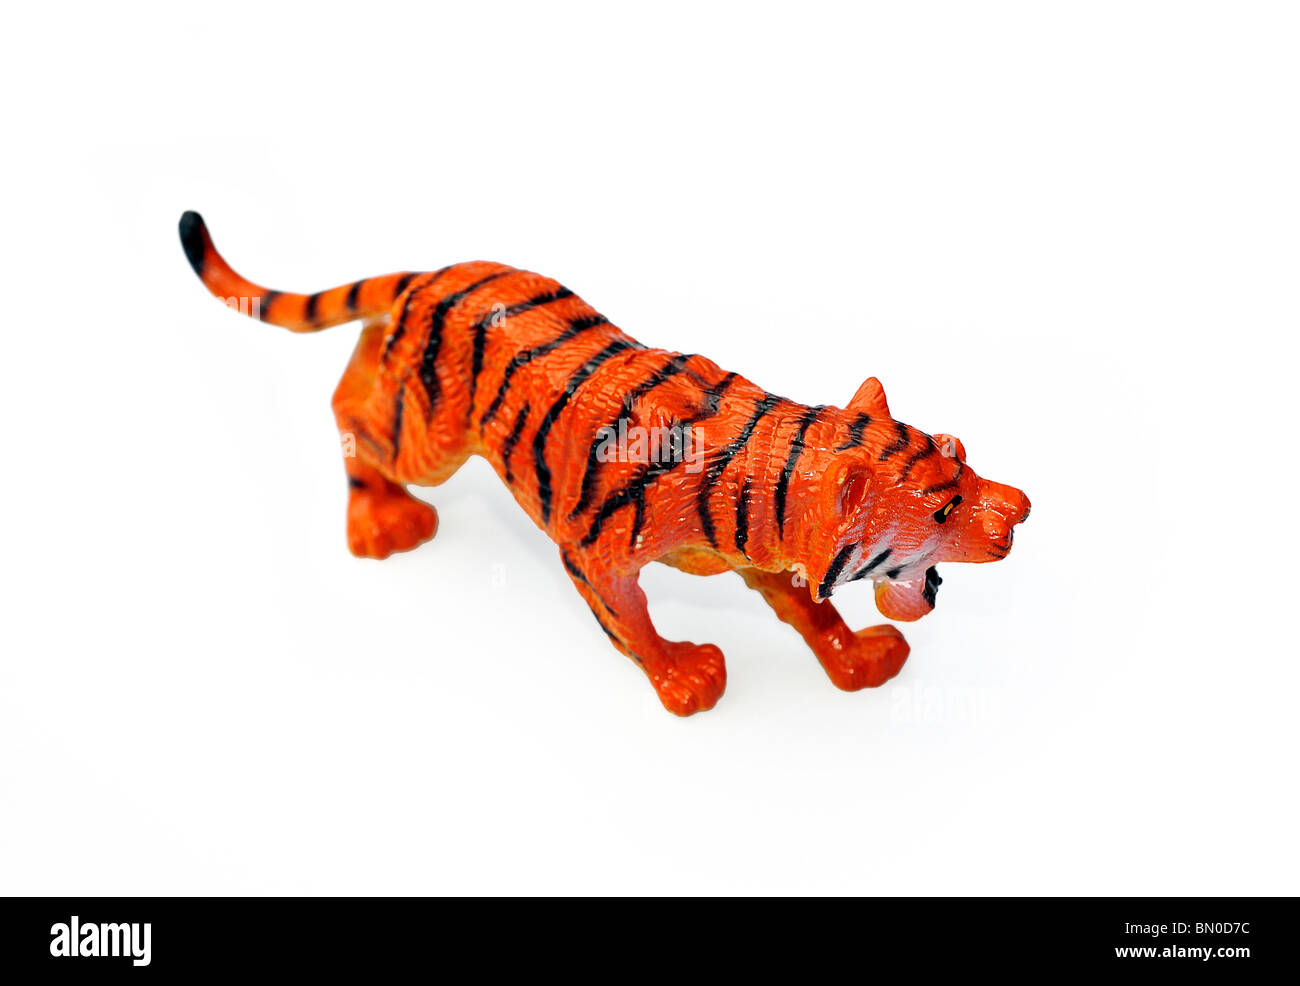 Toy plastic tiger - Stock Image